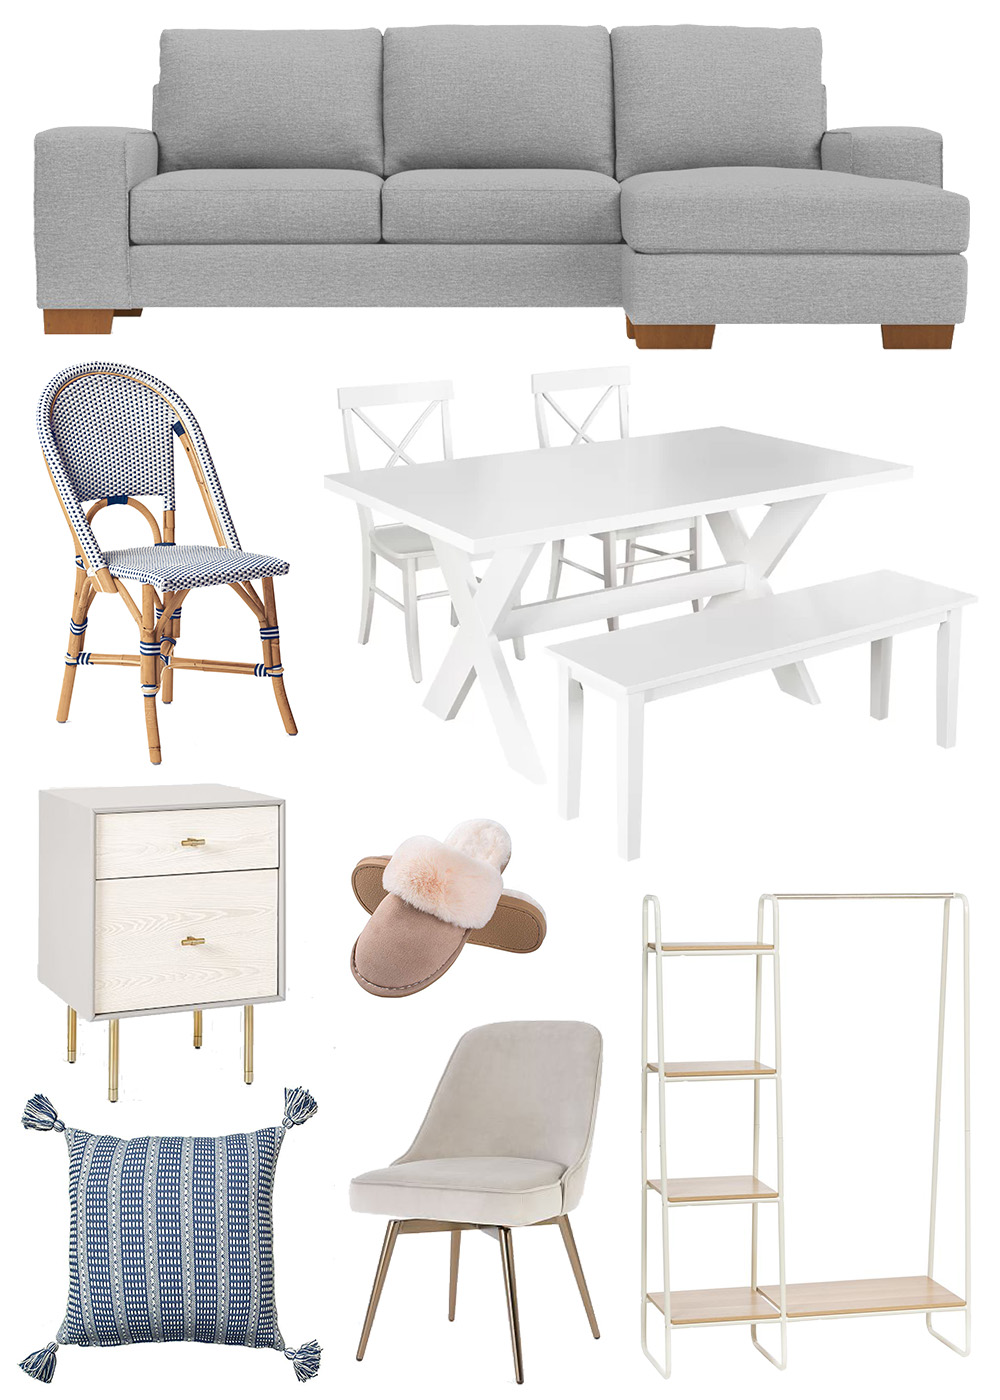 Serena and Lilly Inspired Home Furniture